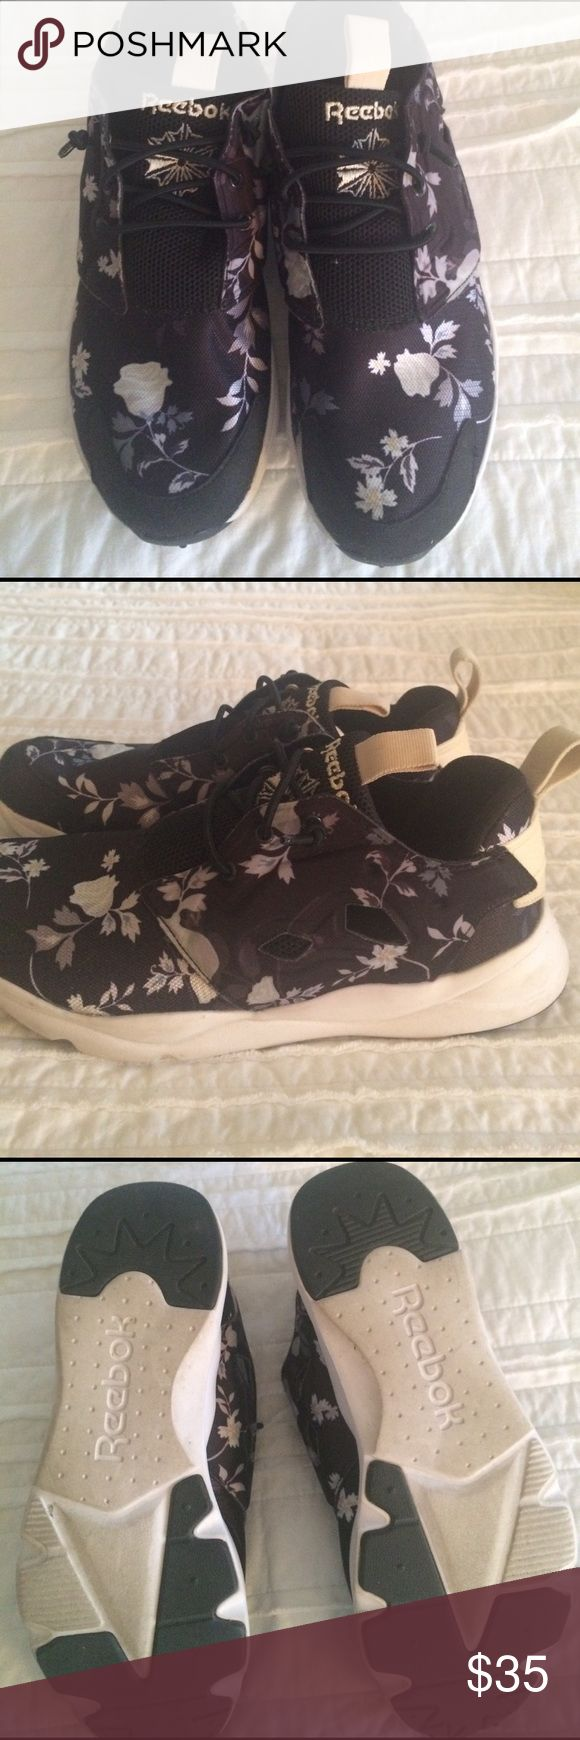 Reebok FuryLite Printed Sneaker Put some fashion in your step with this floral prints ultra lite running shoe . Nylon mesh and cut out for comfort . Pull on style with cord laces . Hardly worn ! Reebok Shoes Sneakers